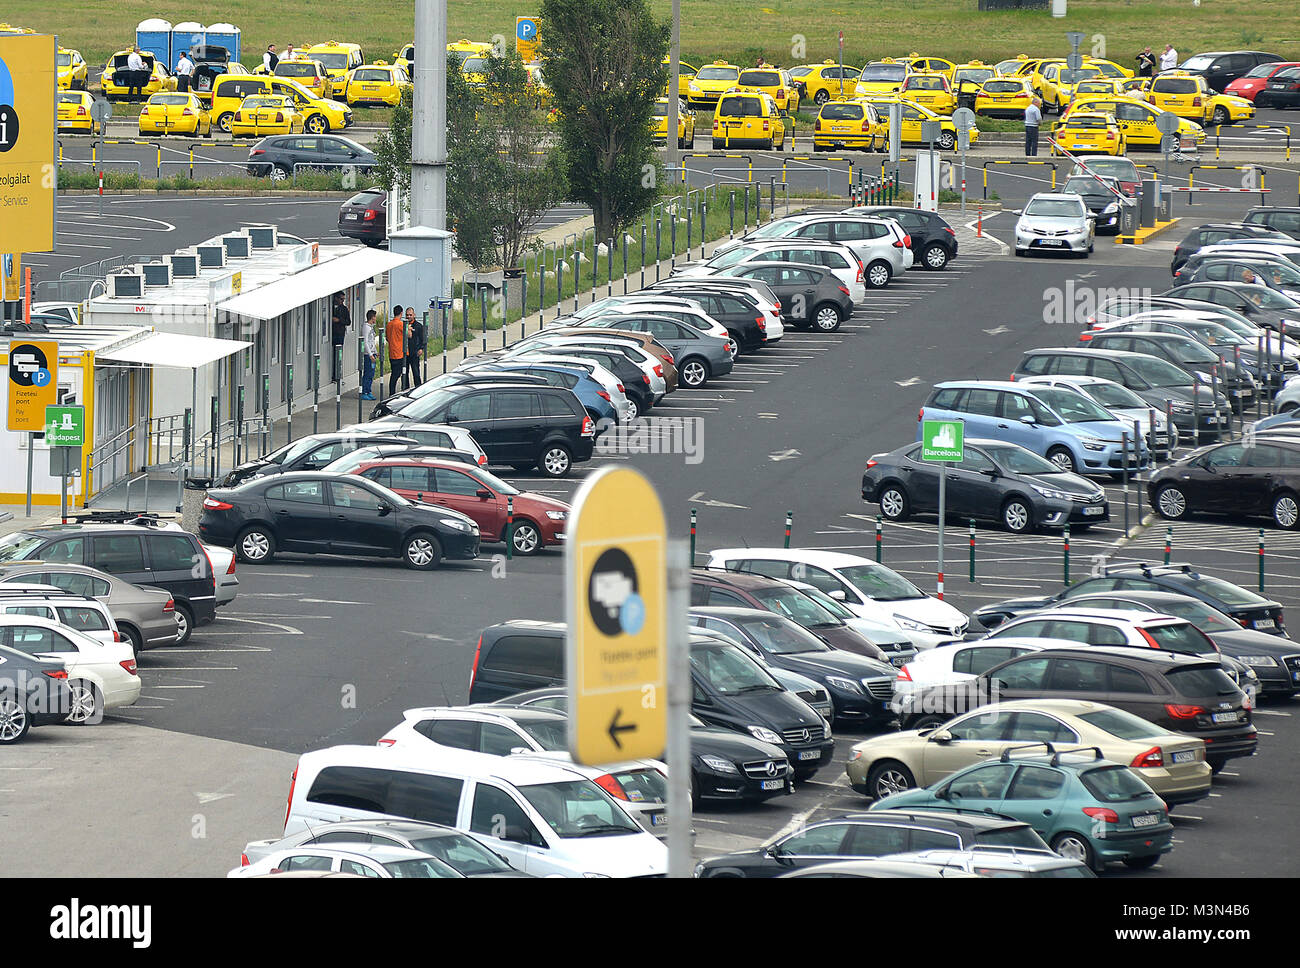 Airport parking stock photos airport parking stock images alamy parking ferenc listz international airport budapest hungary stock image kristyandbryce Image collections